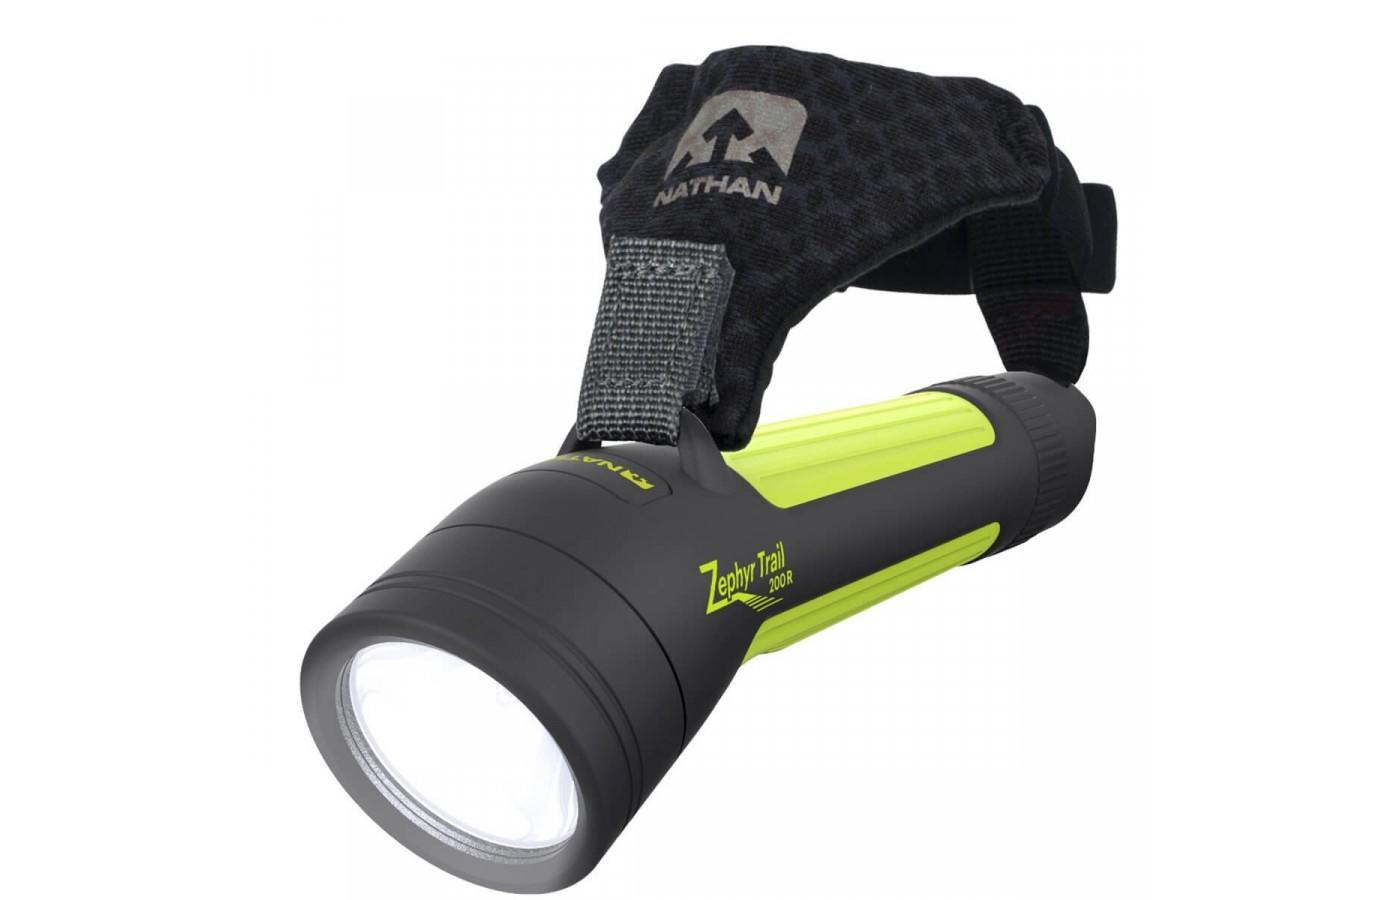 This hand torch provides the runner with a safety option that doesn't need to involve the head.